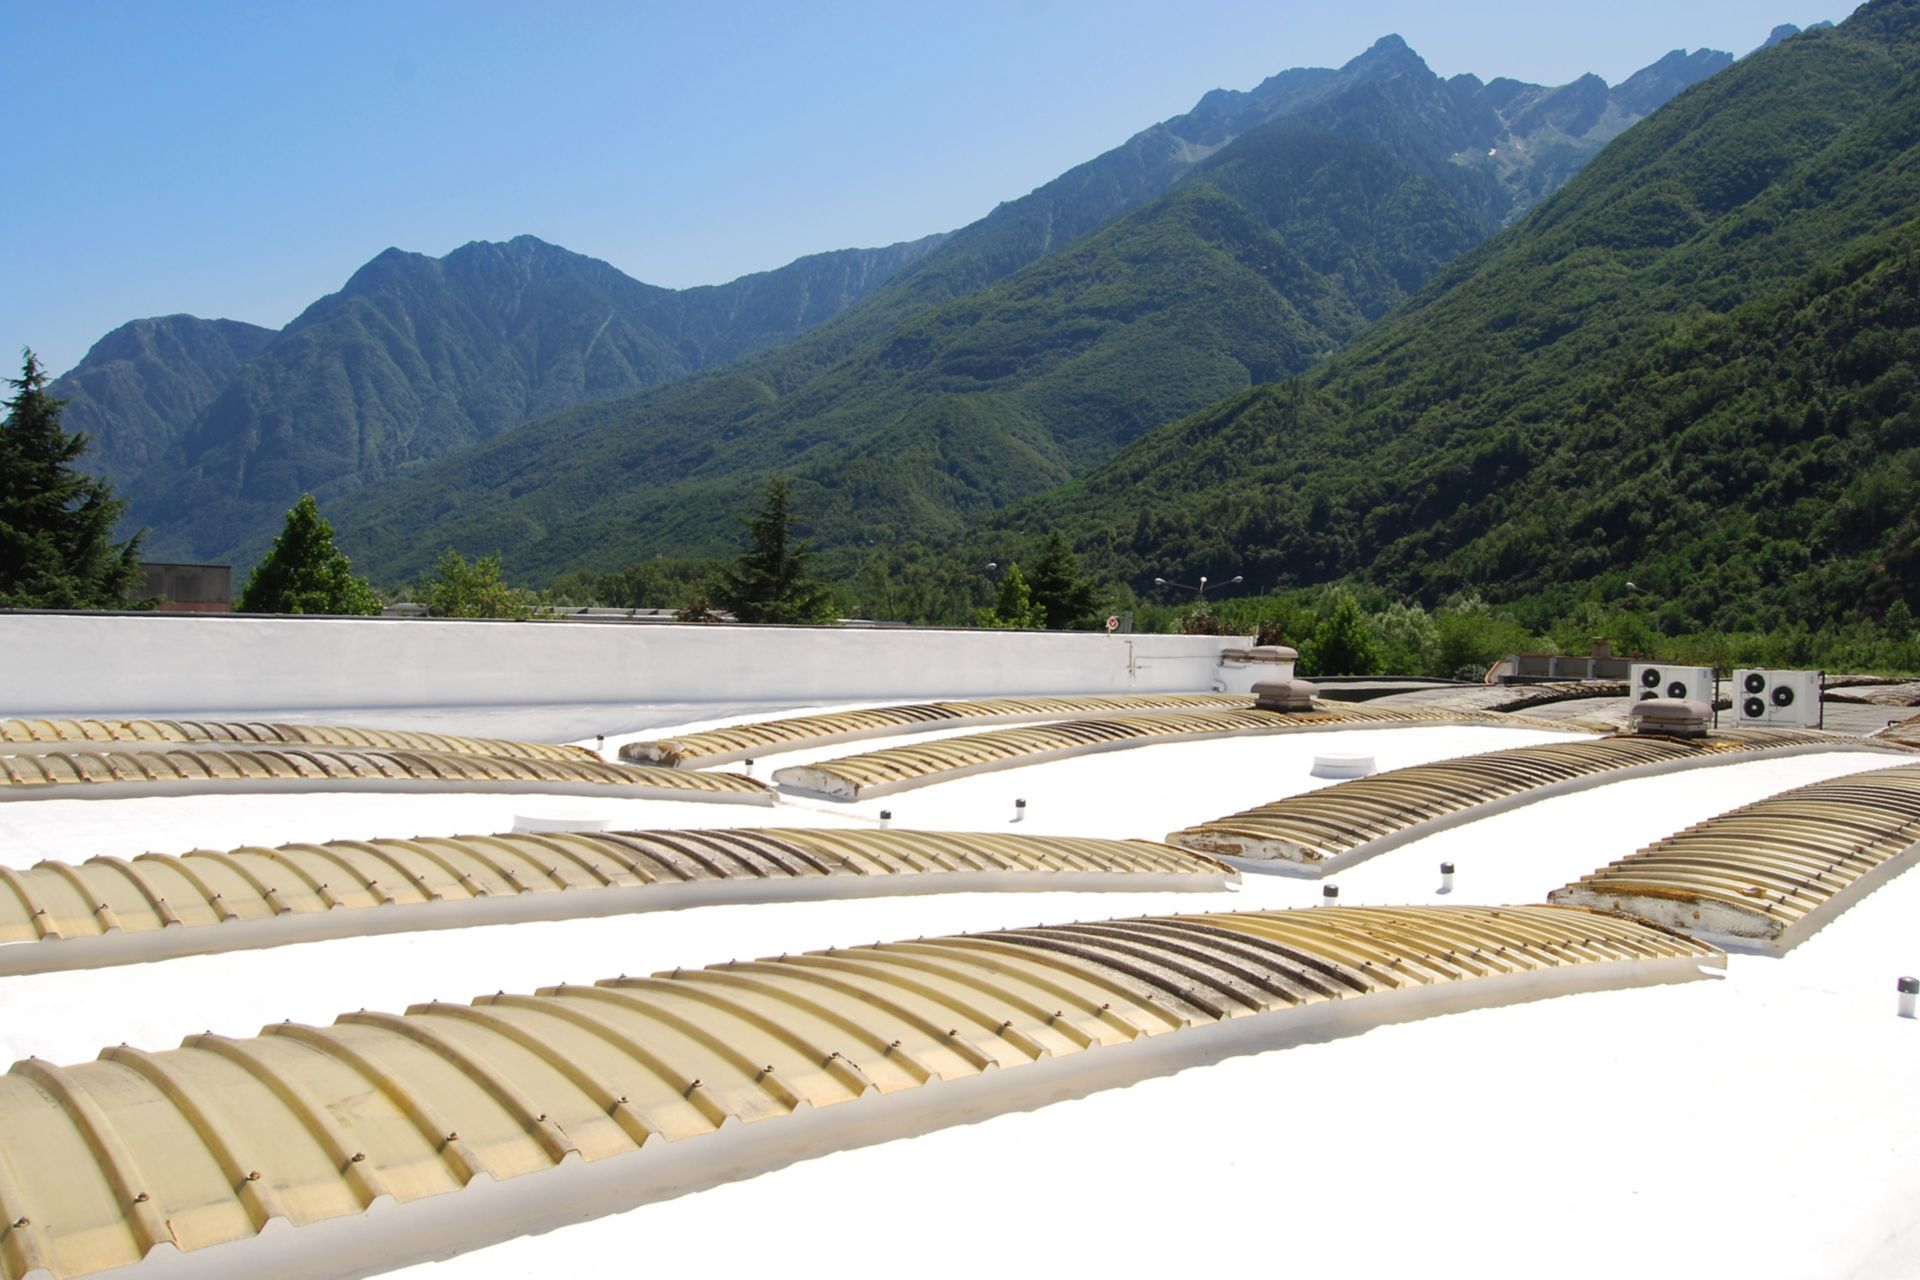 Roof of the Leaf Italy S.R.L Factory